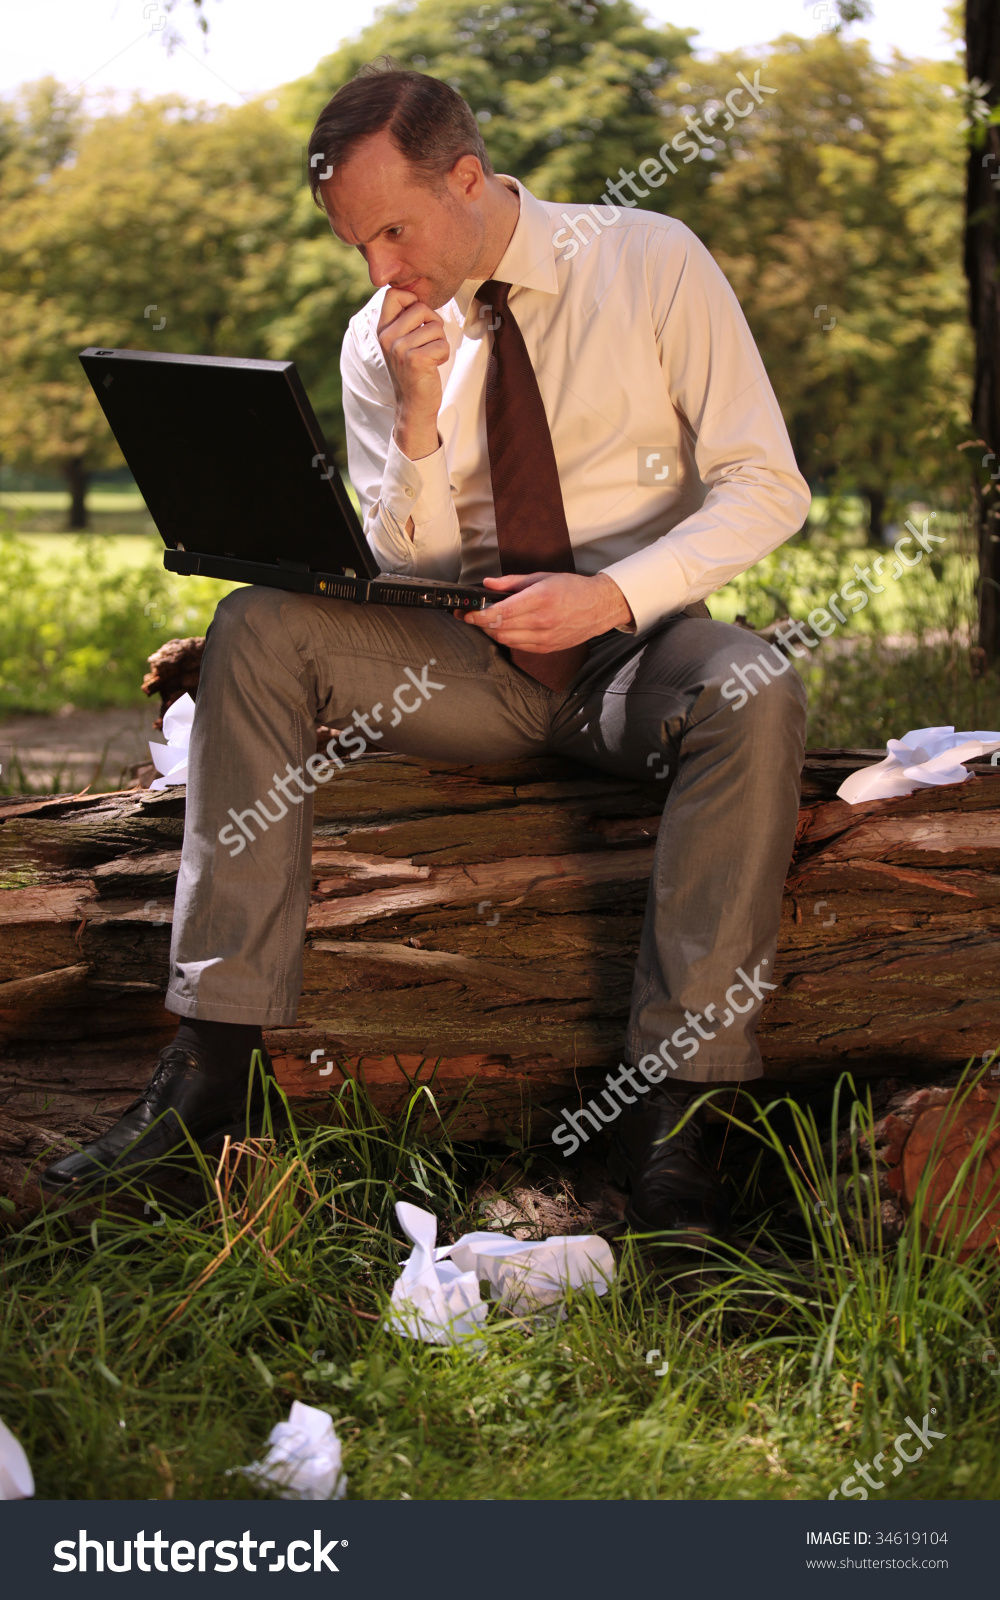 stock-photo-businessman-working-on-laptop-in-a-city-park-34619104